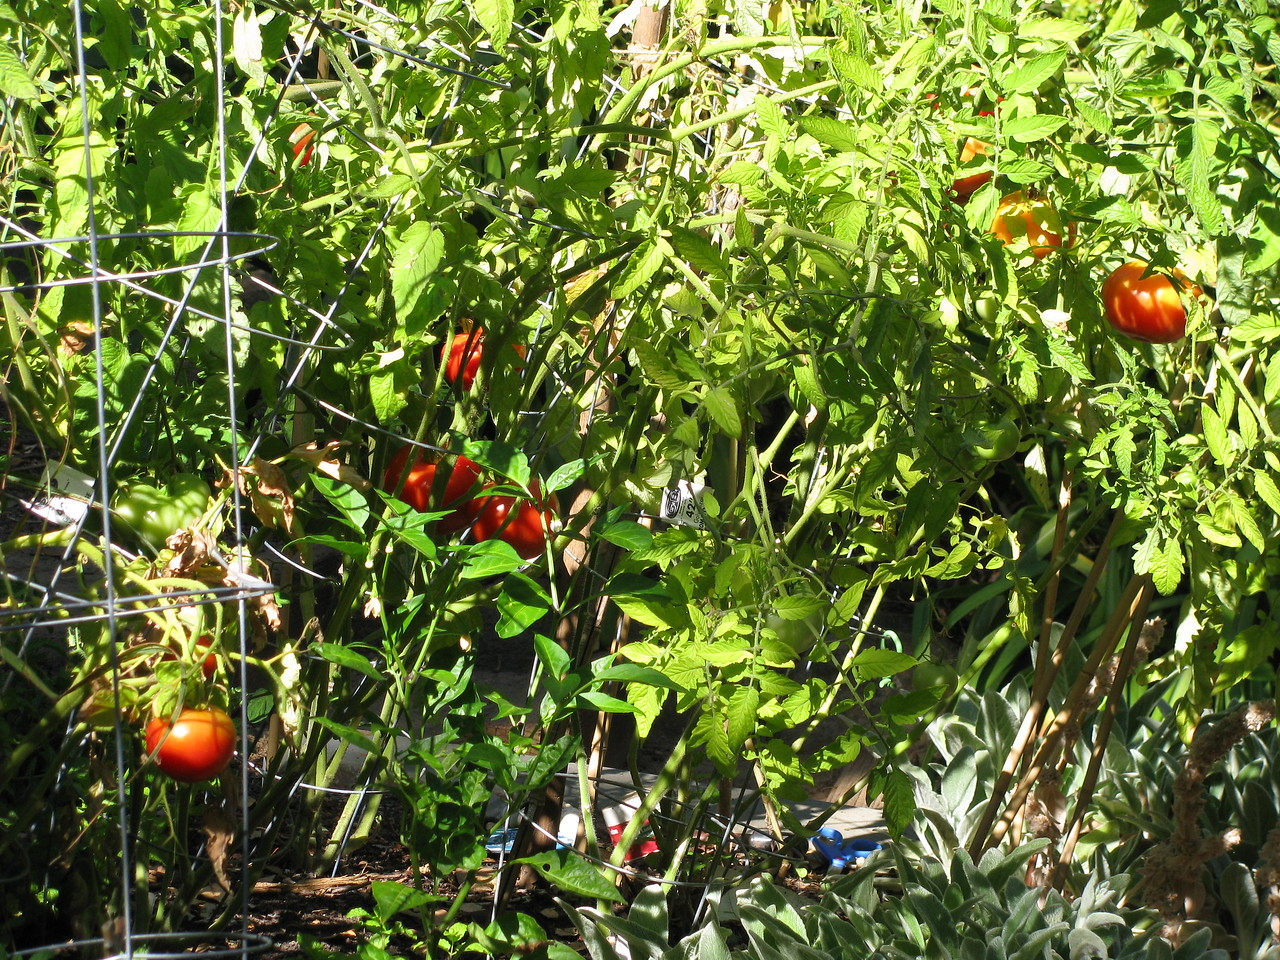 Ah, some of those tomatoes look ready to pick!